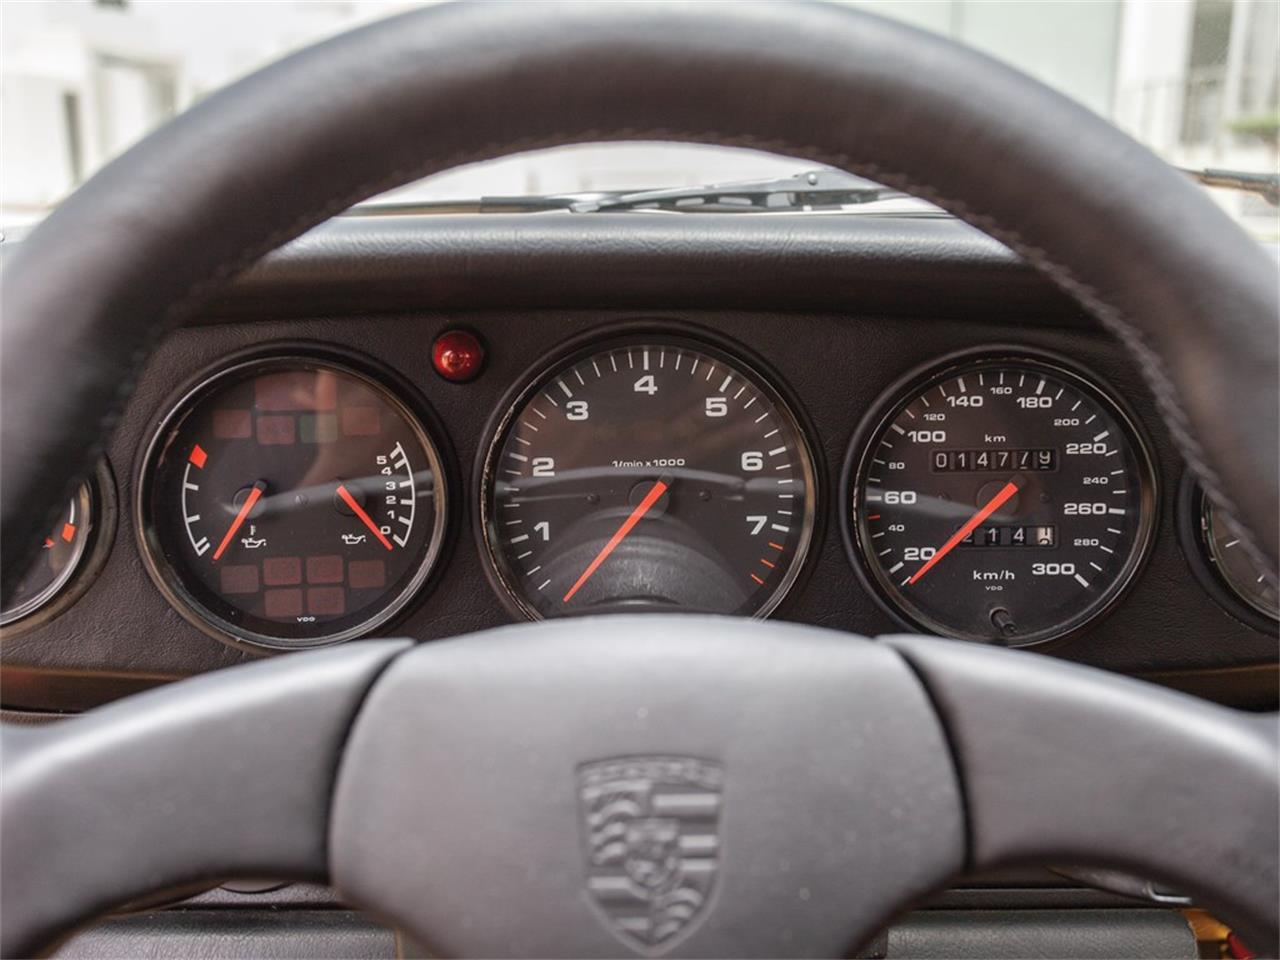 1993 Porsche 911 Carrera RSR (CC-1274023) for sale in Yas Island, Abu Dhabi